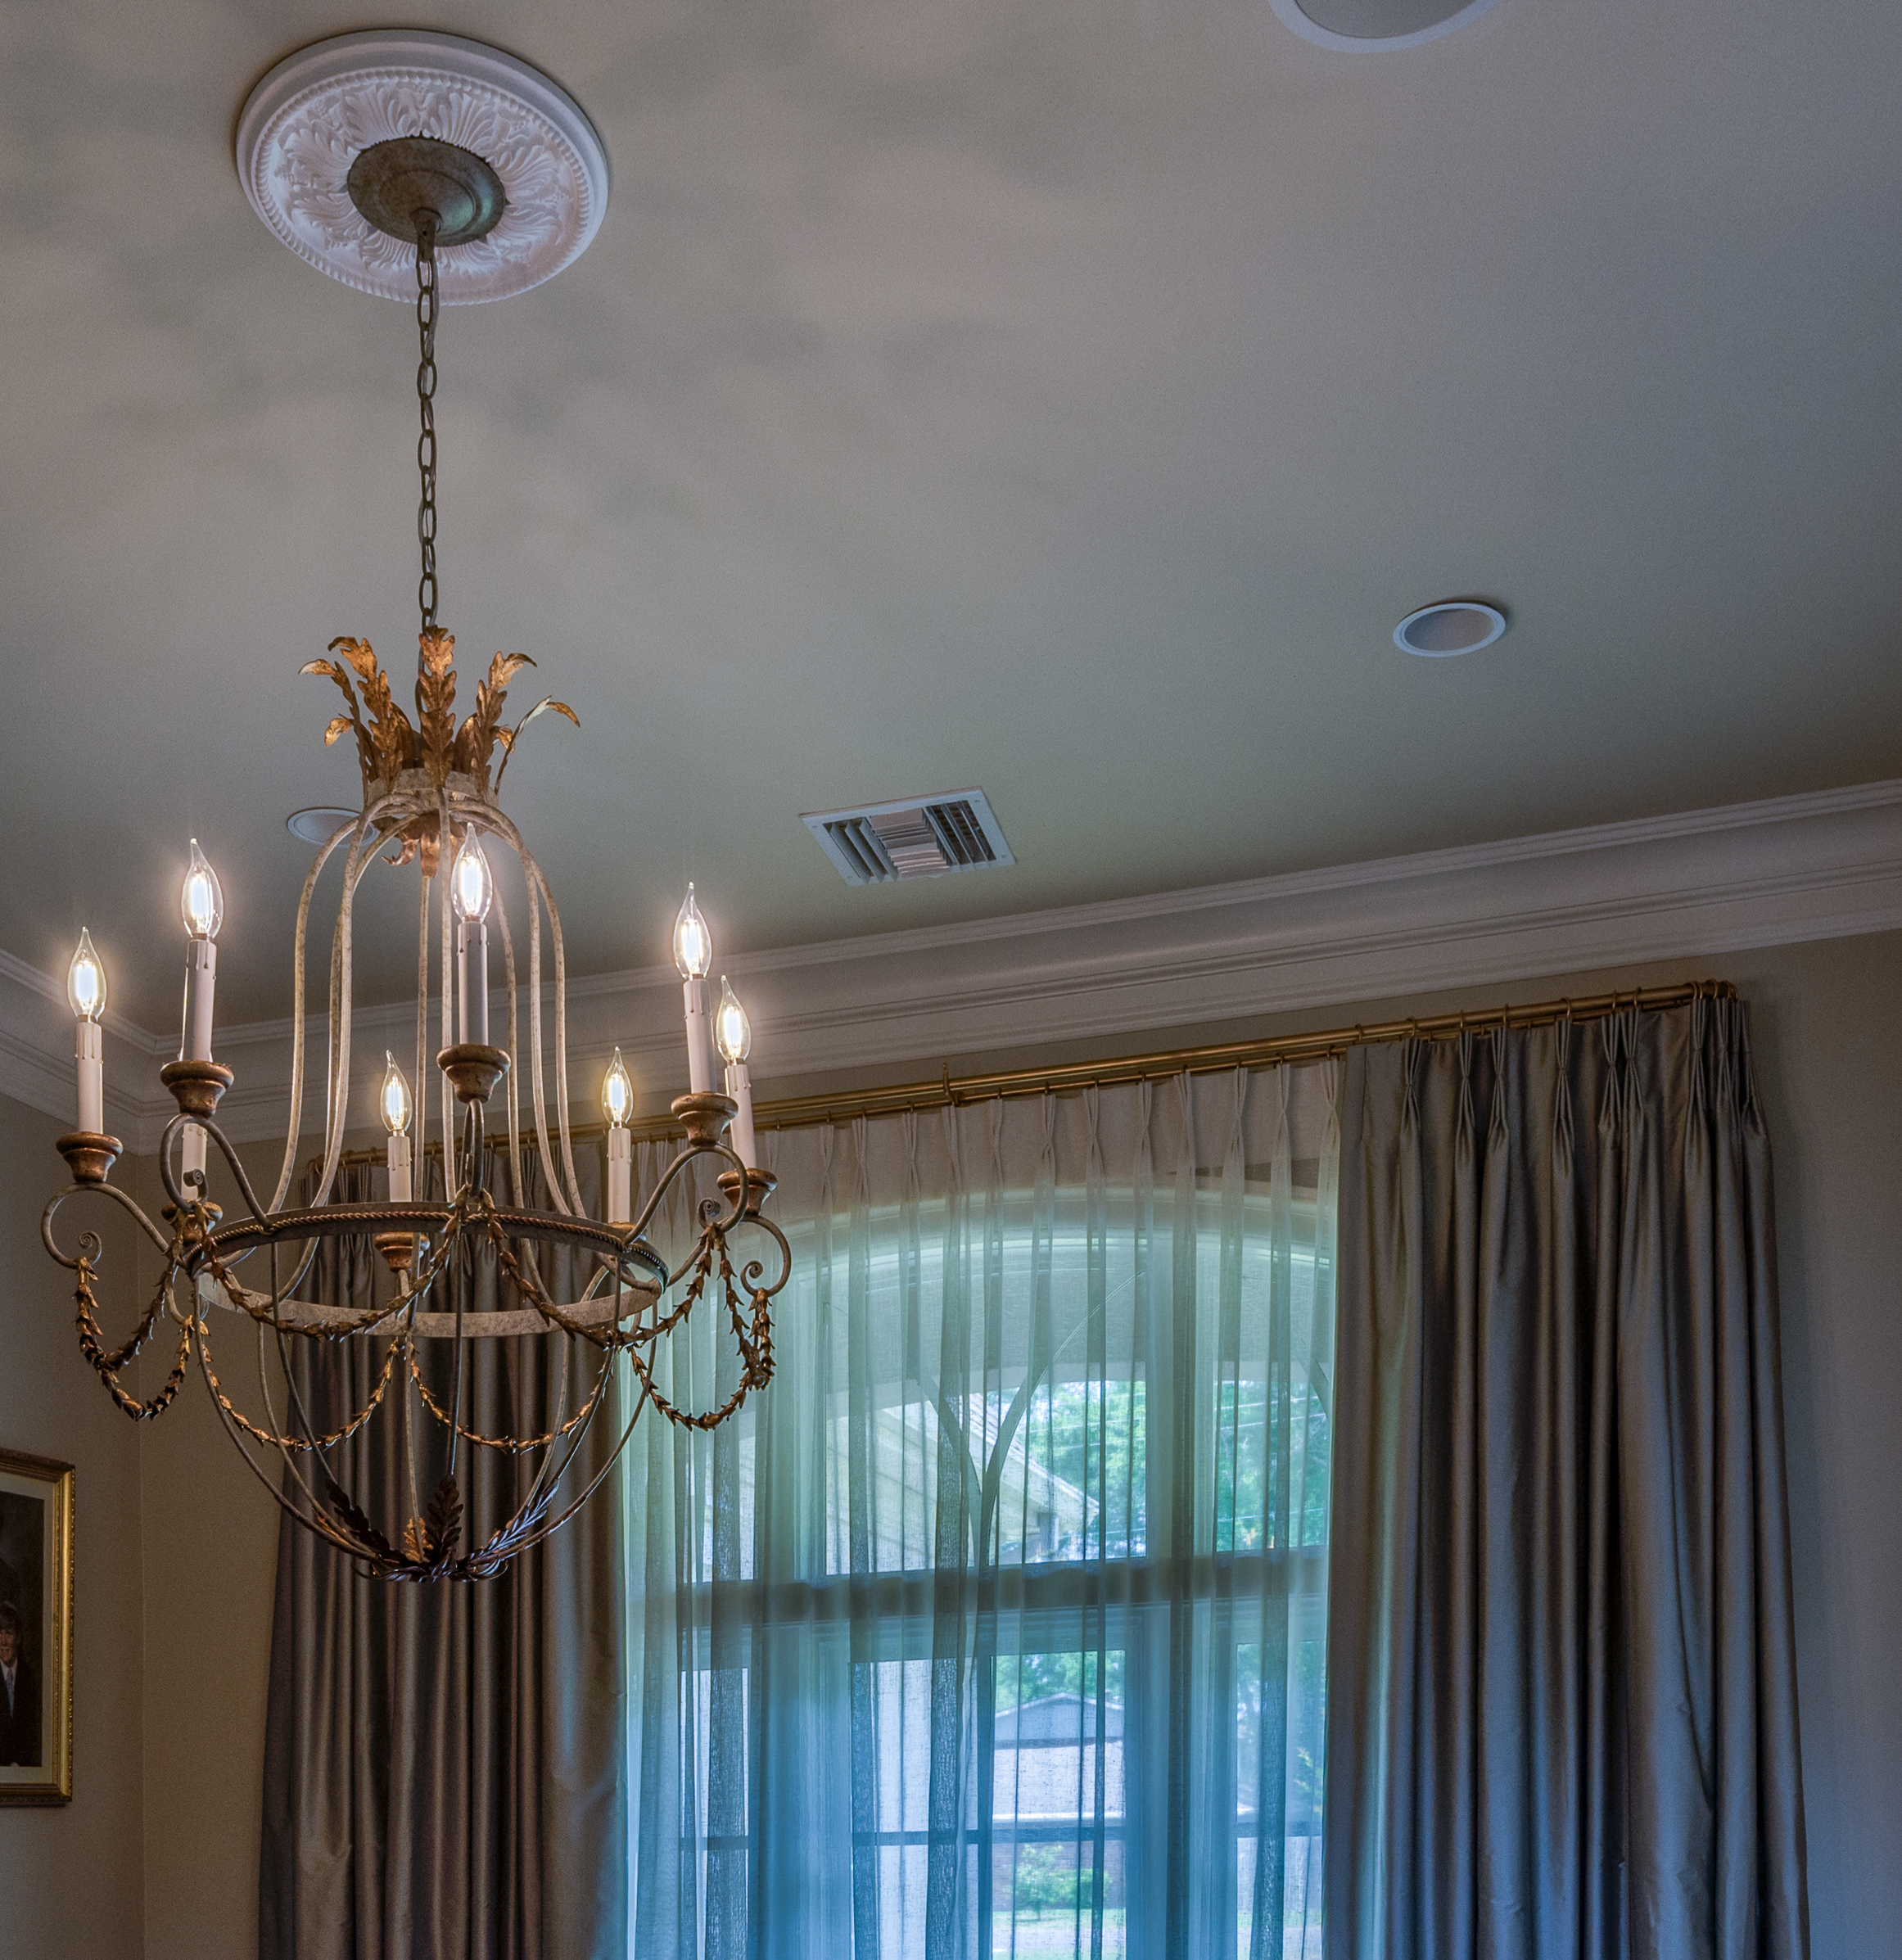 traditional chandelier ideas metairie best interior designers khb interiors